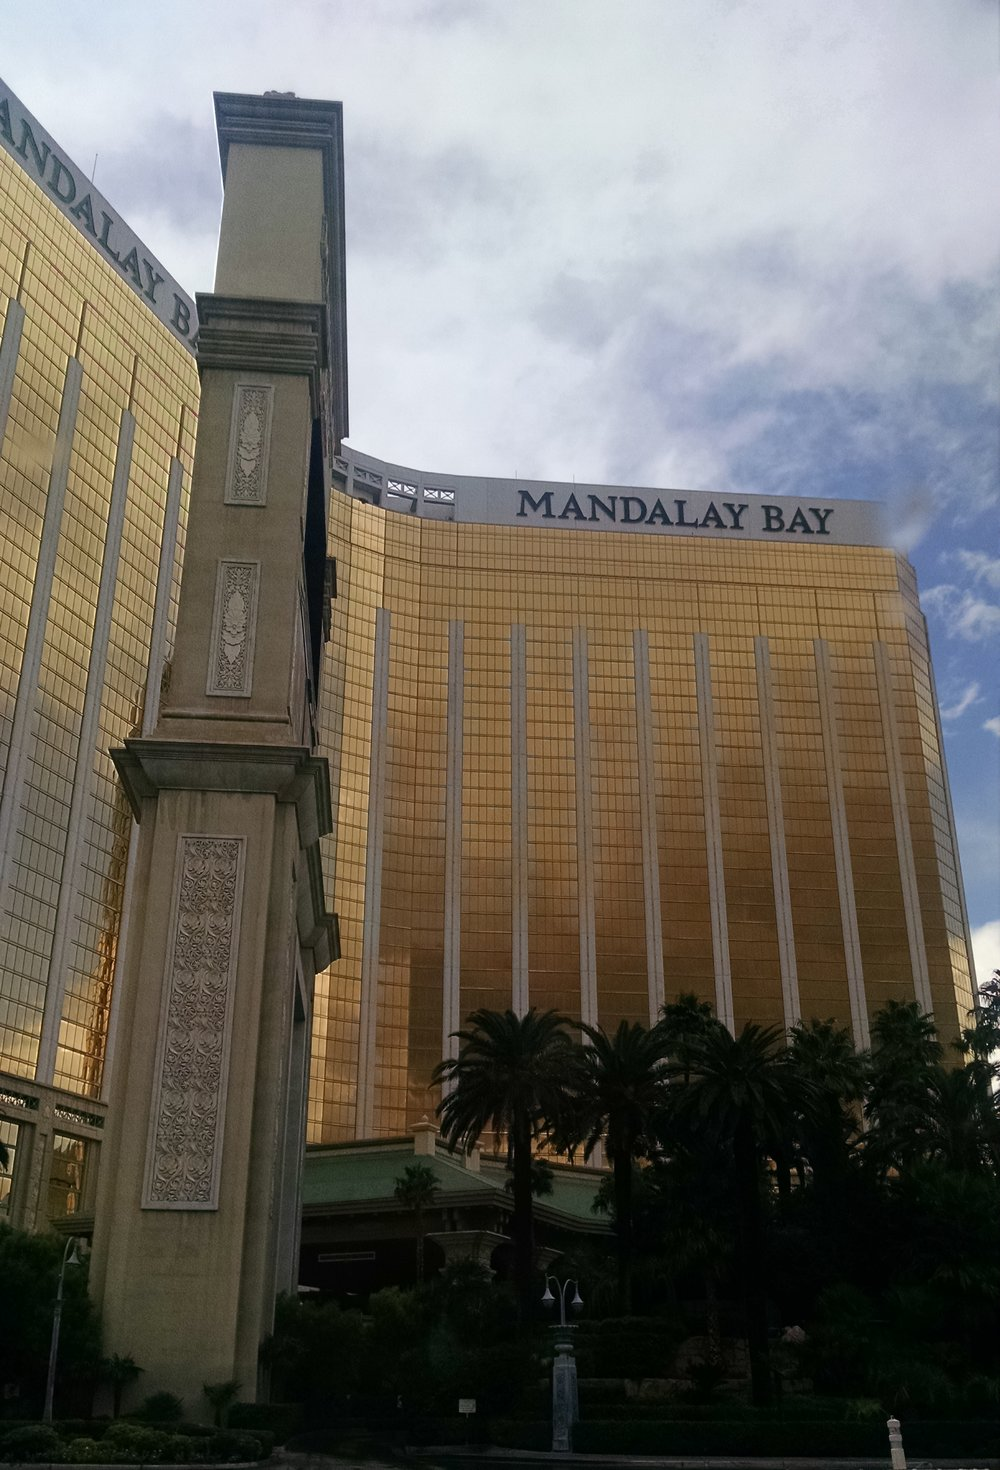 Mandalay Bay - This year's conference is located on the Las Vegas strip at the Mandalay Bay Resort & Casino.